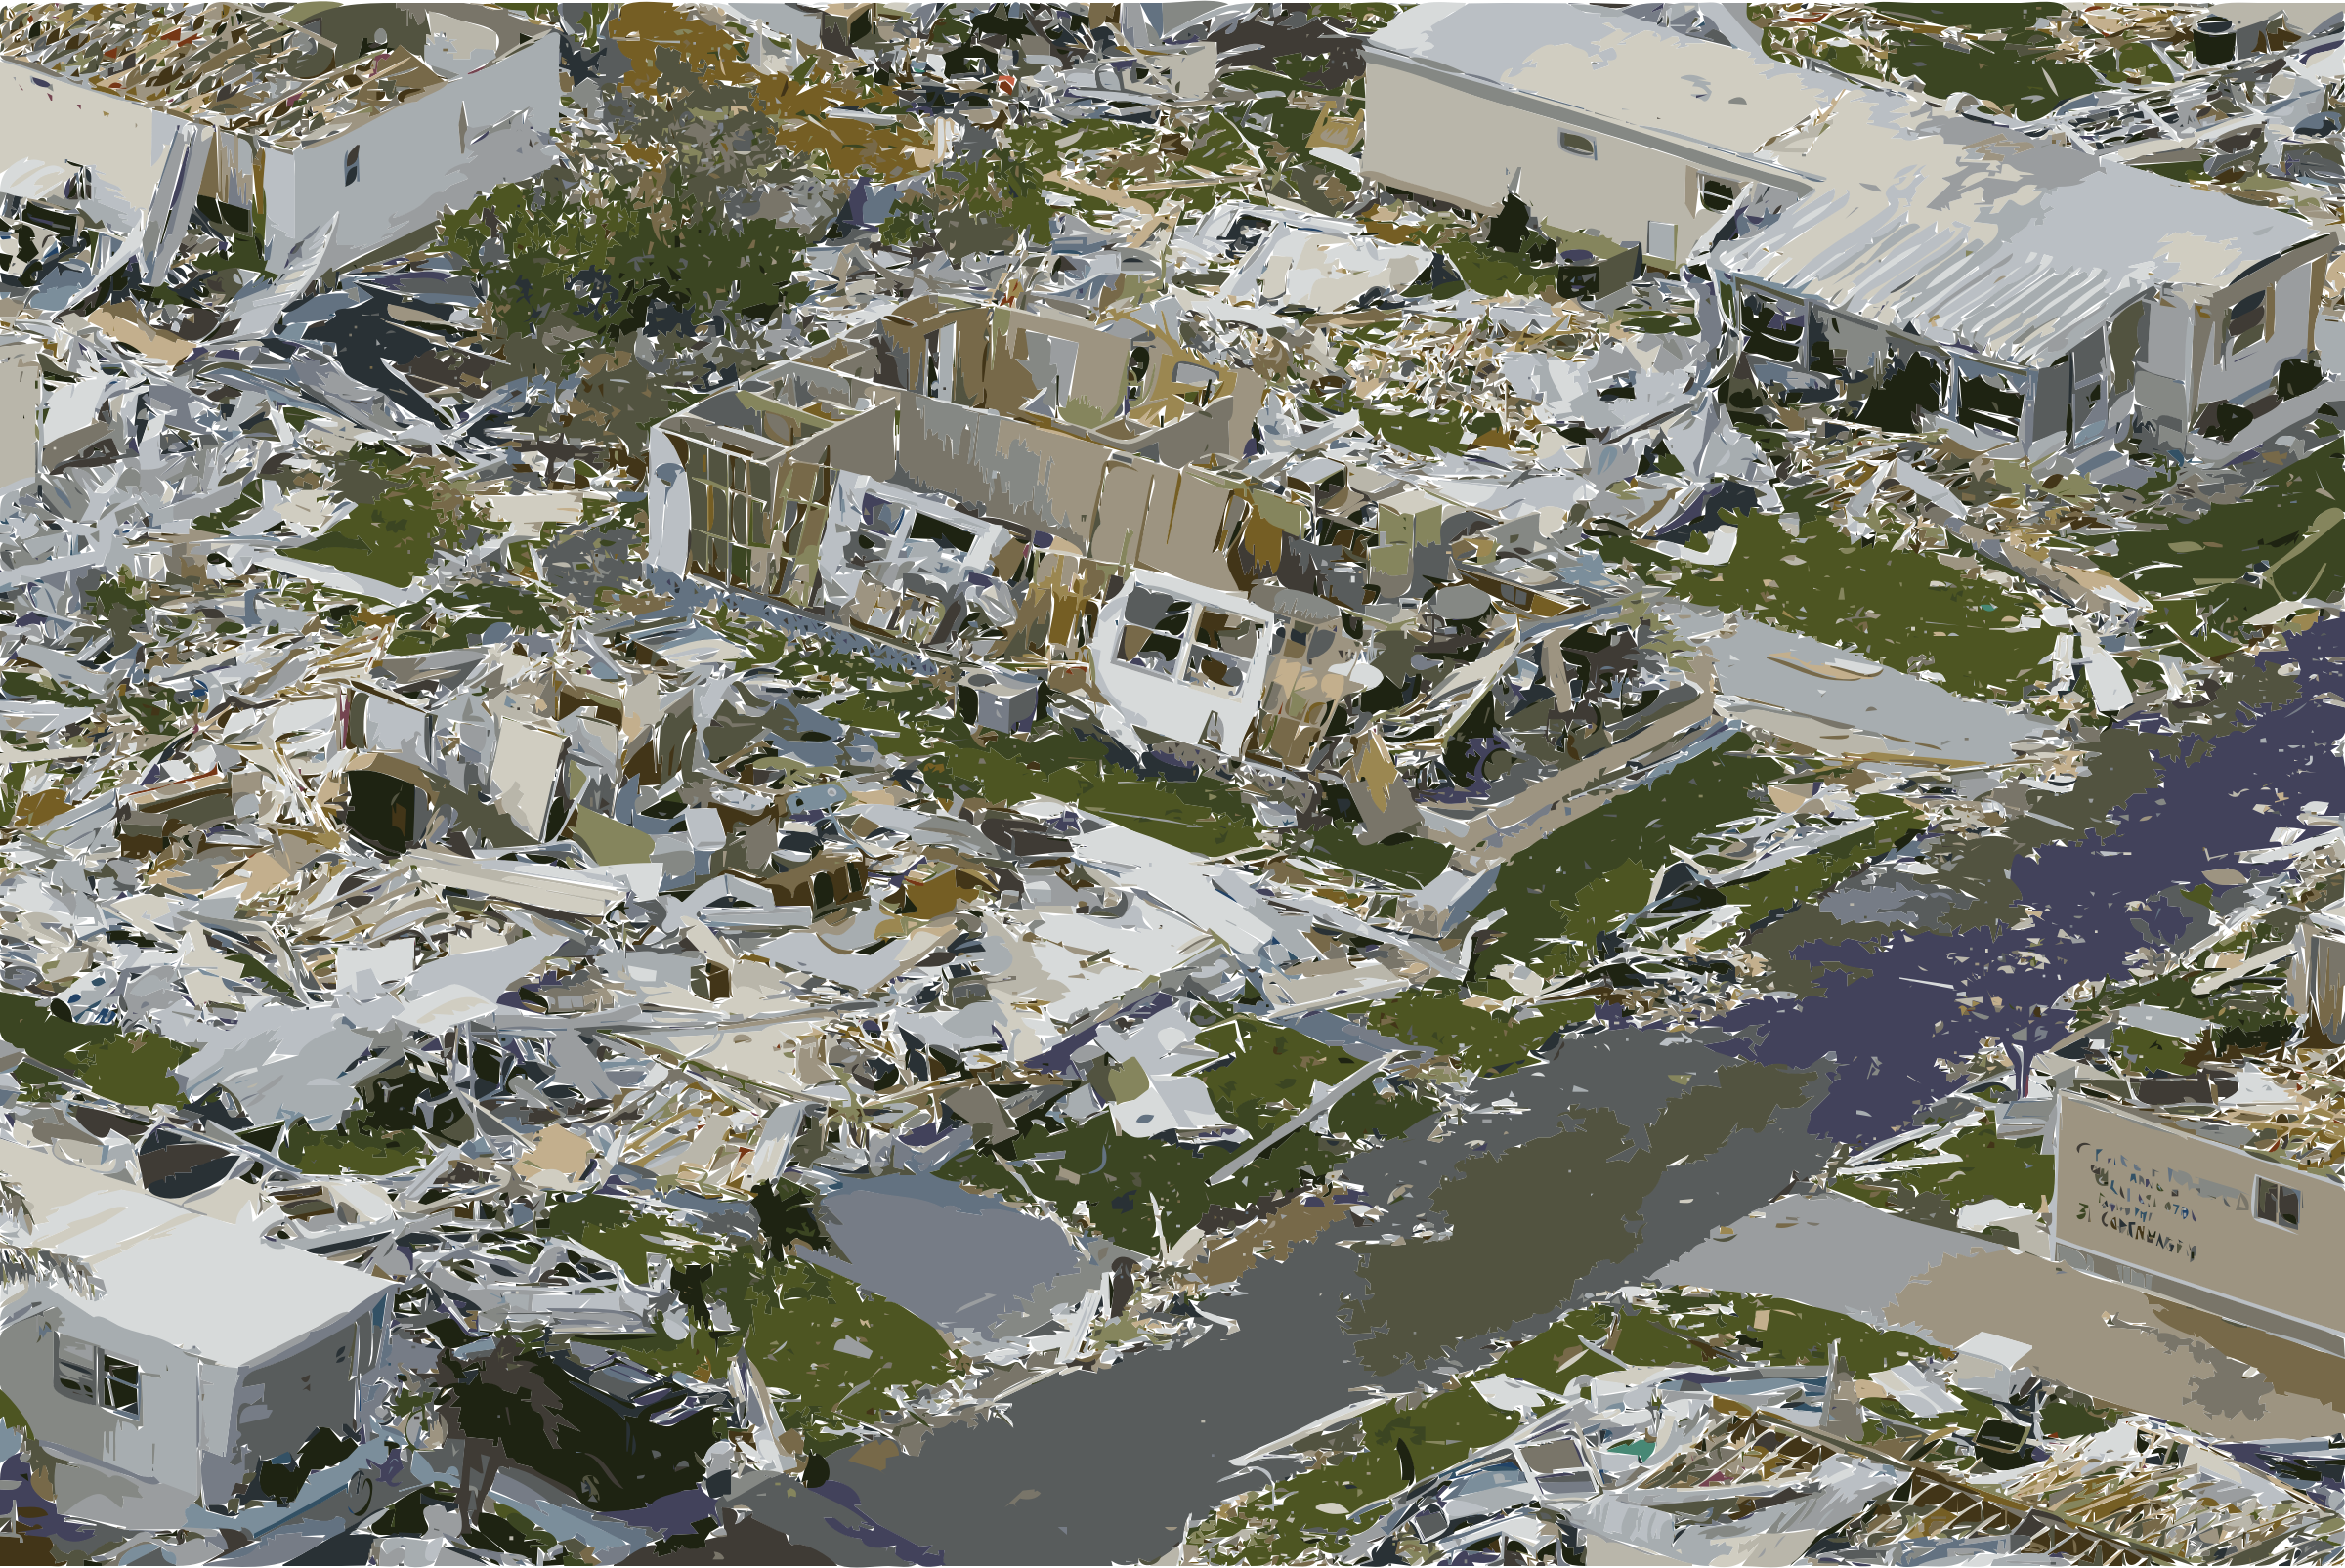 Effects of Hurricane Charley from FEMA Photo Library 7 by 3wdob5+5vzcyh4n9vvo8